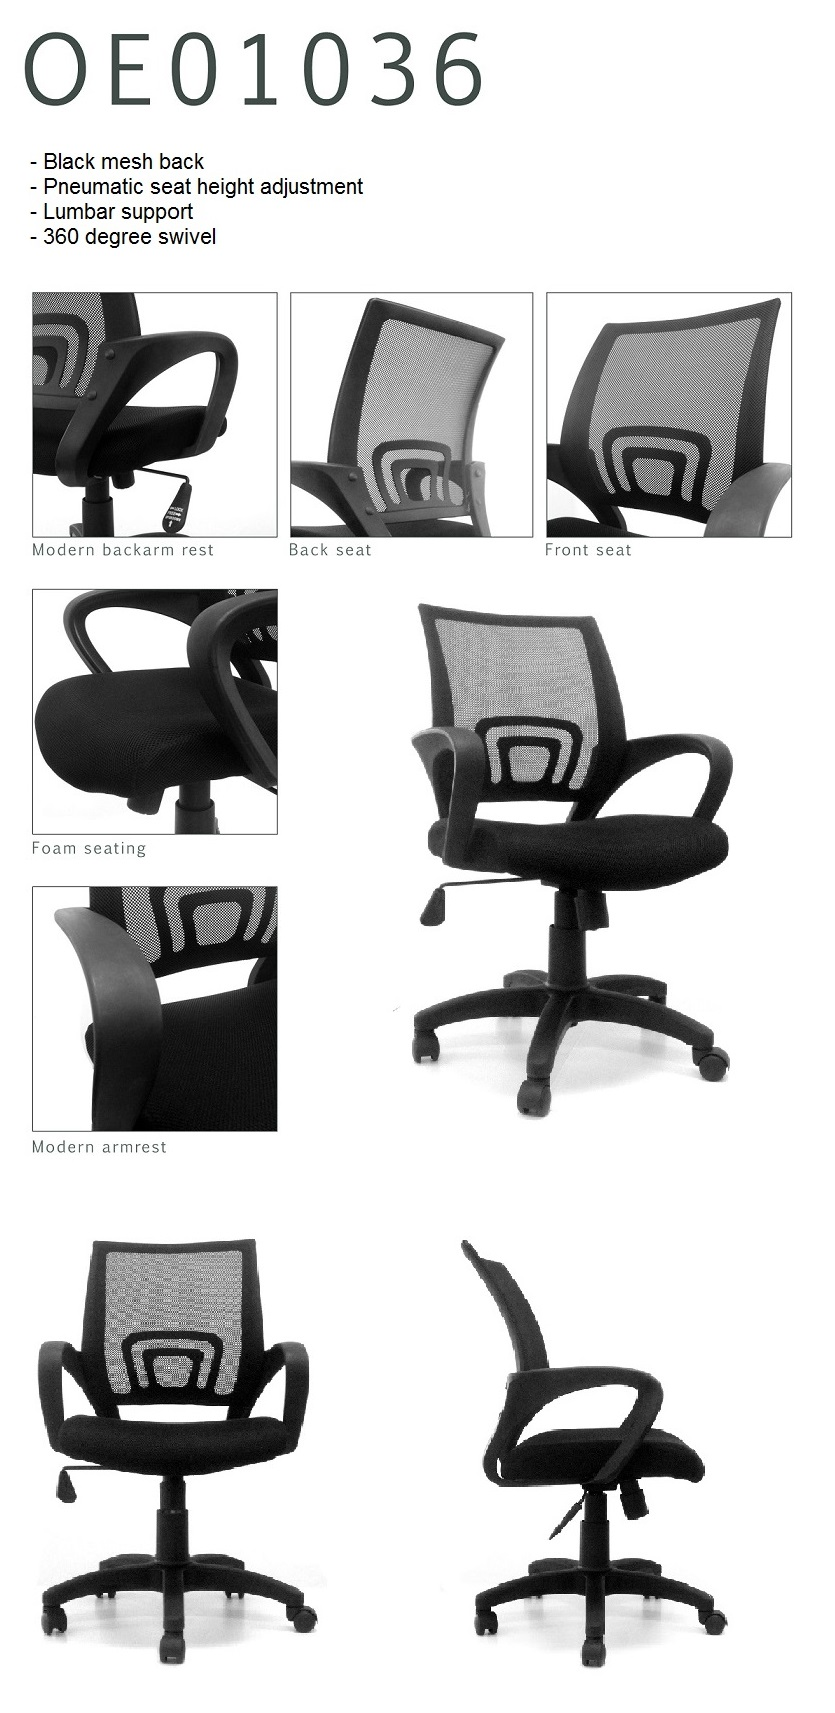 Office Renovation Promotion Win Office Chair